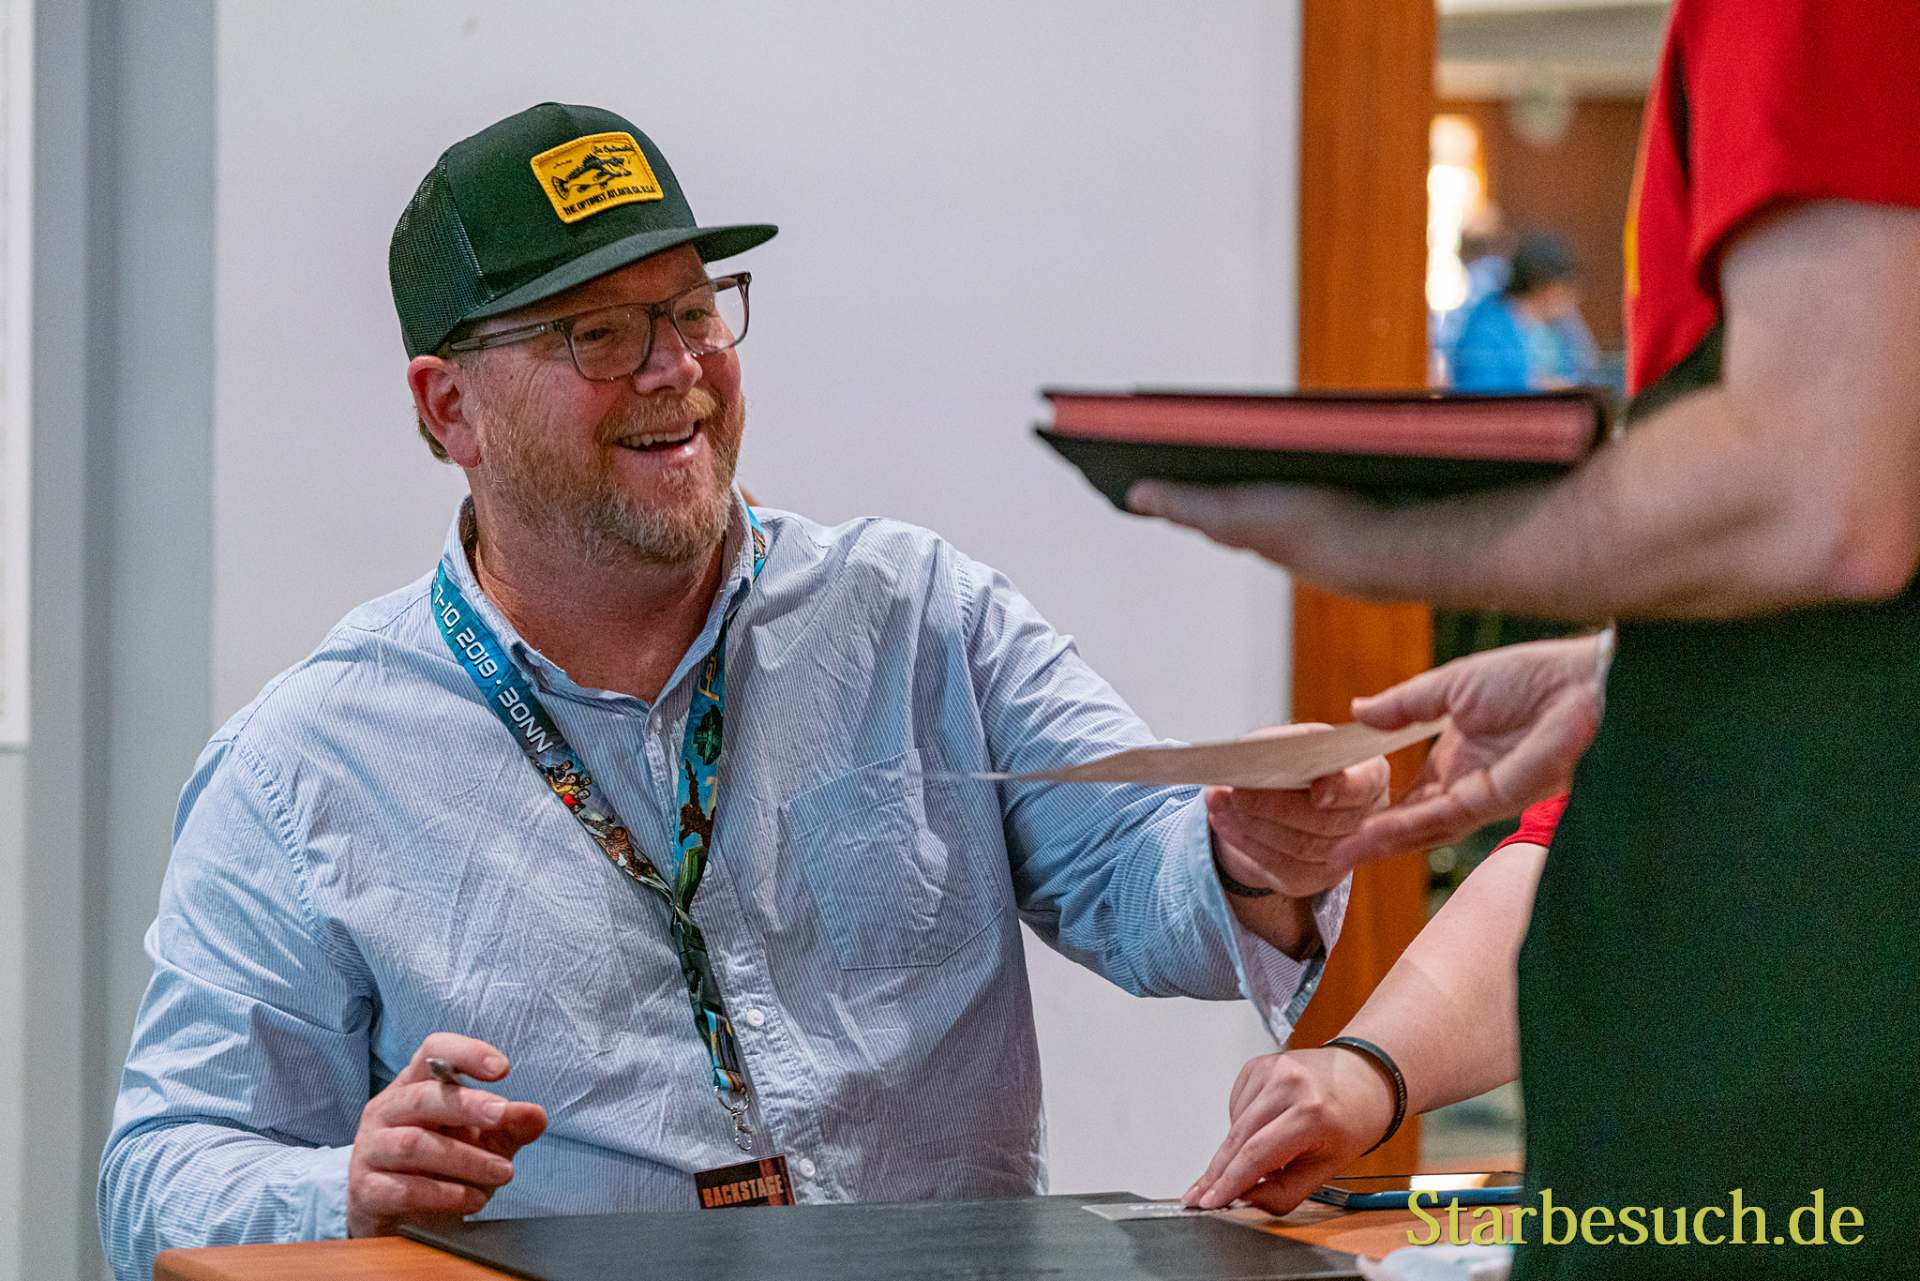 Bonn, Germany - June 8 2019: Robert Duncan McNeill (*1964, American actor and director - Star Trek: Voyager) is happy to meet fans at FedCon 28